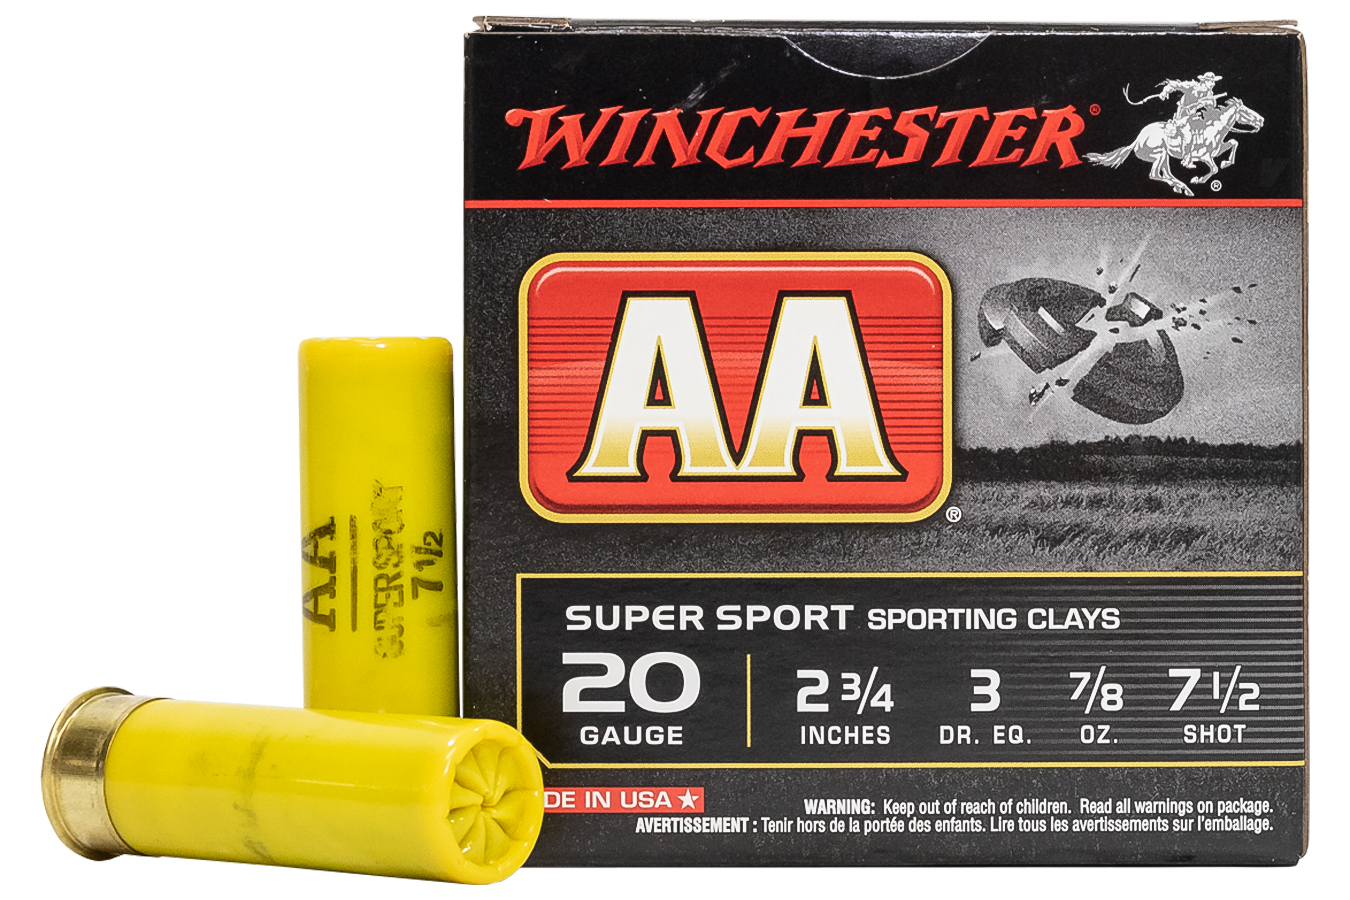 20 GA 2-3/4 IN 7/8 OZ SPORTING CLAYS